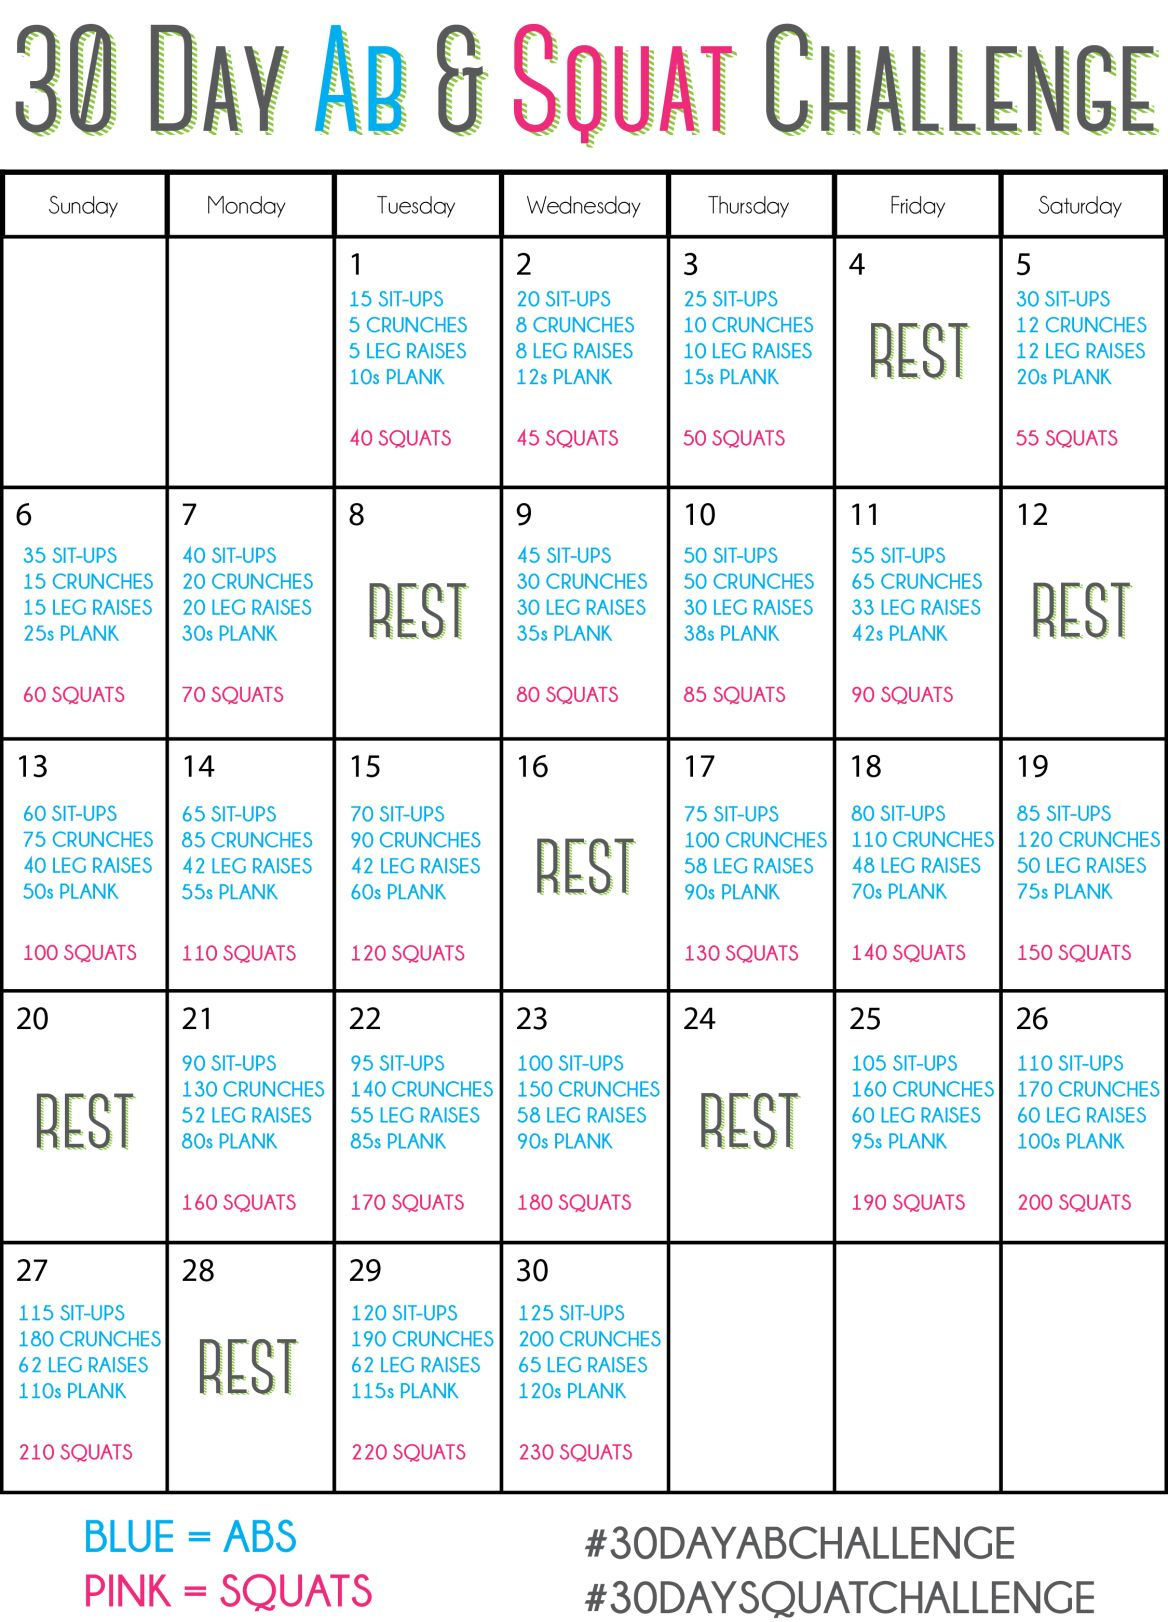 30 Day Ab Squat Challenge Chart - Trinity pertaining to 30 Day Sit Up And Squat Challenge Printable